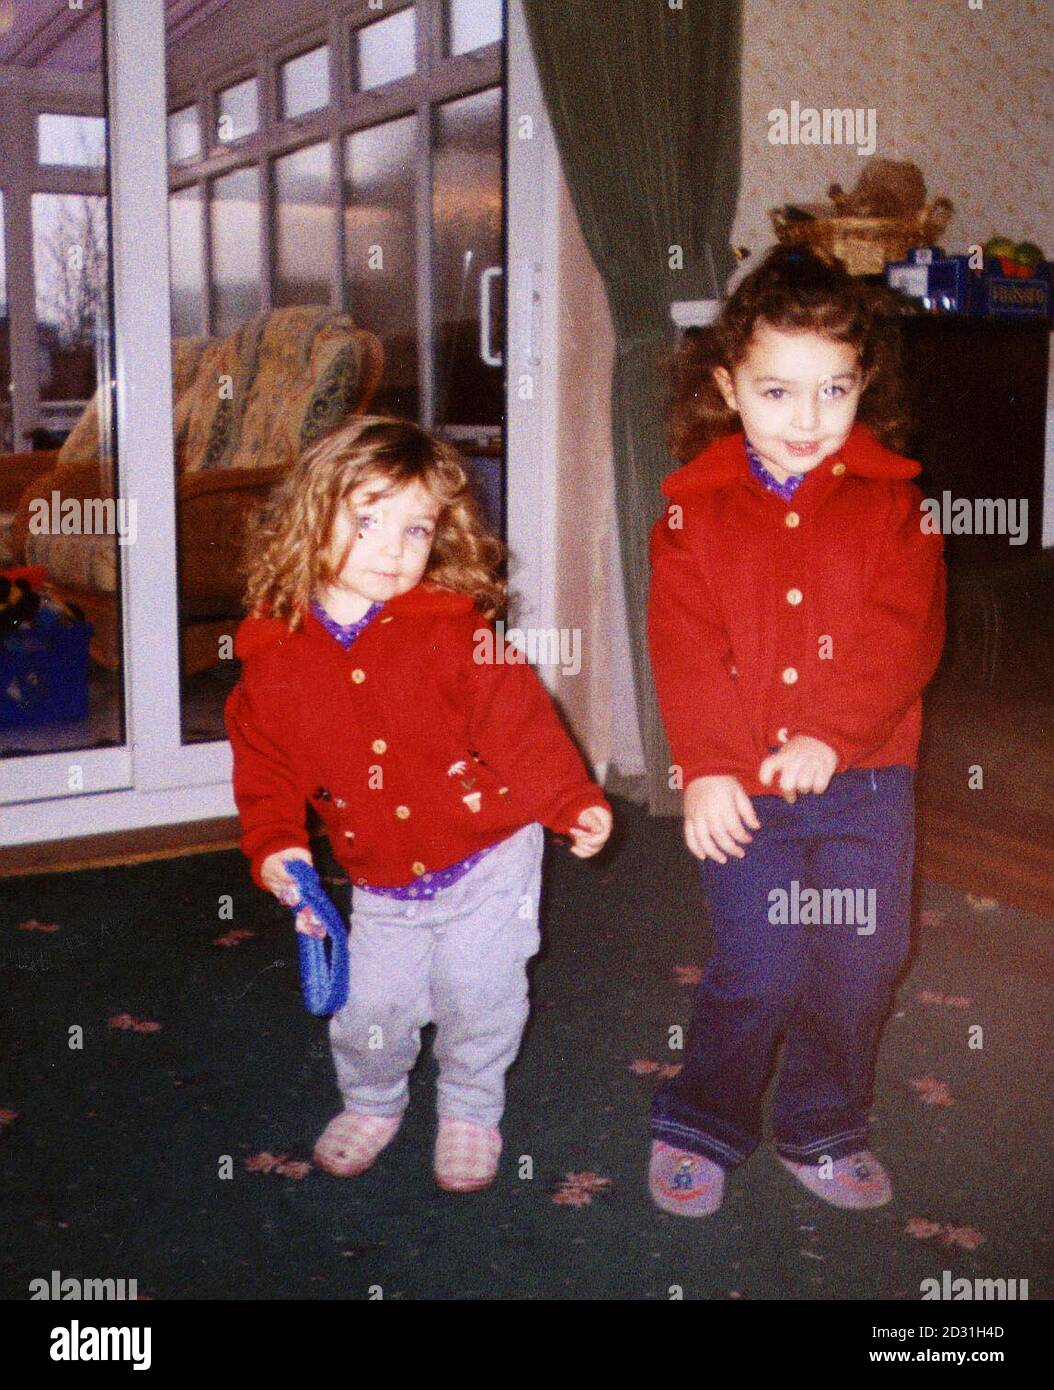 Yasmin Budancamanak, 2, and her sister Clare, 3, who Thurrock Council say were taken from their foster home in Thurrock, under threat of violence. It is believed they and their brother are in the company of their mother Sarah Barnes  and/or their father Murat Budancamanak.  *Their father it is thought has family links to Turkey. Essex Police have alerted ports around the country and are searching addresses connected with the couple.   Stock Photo